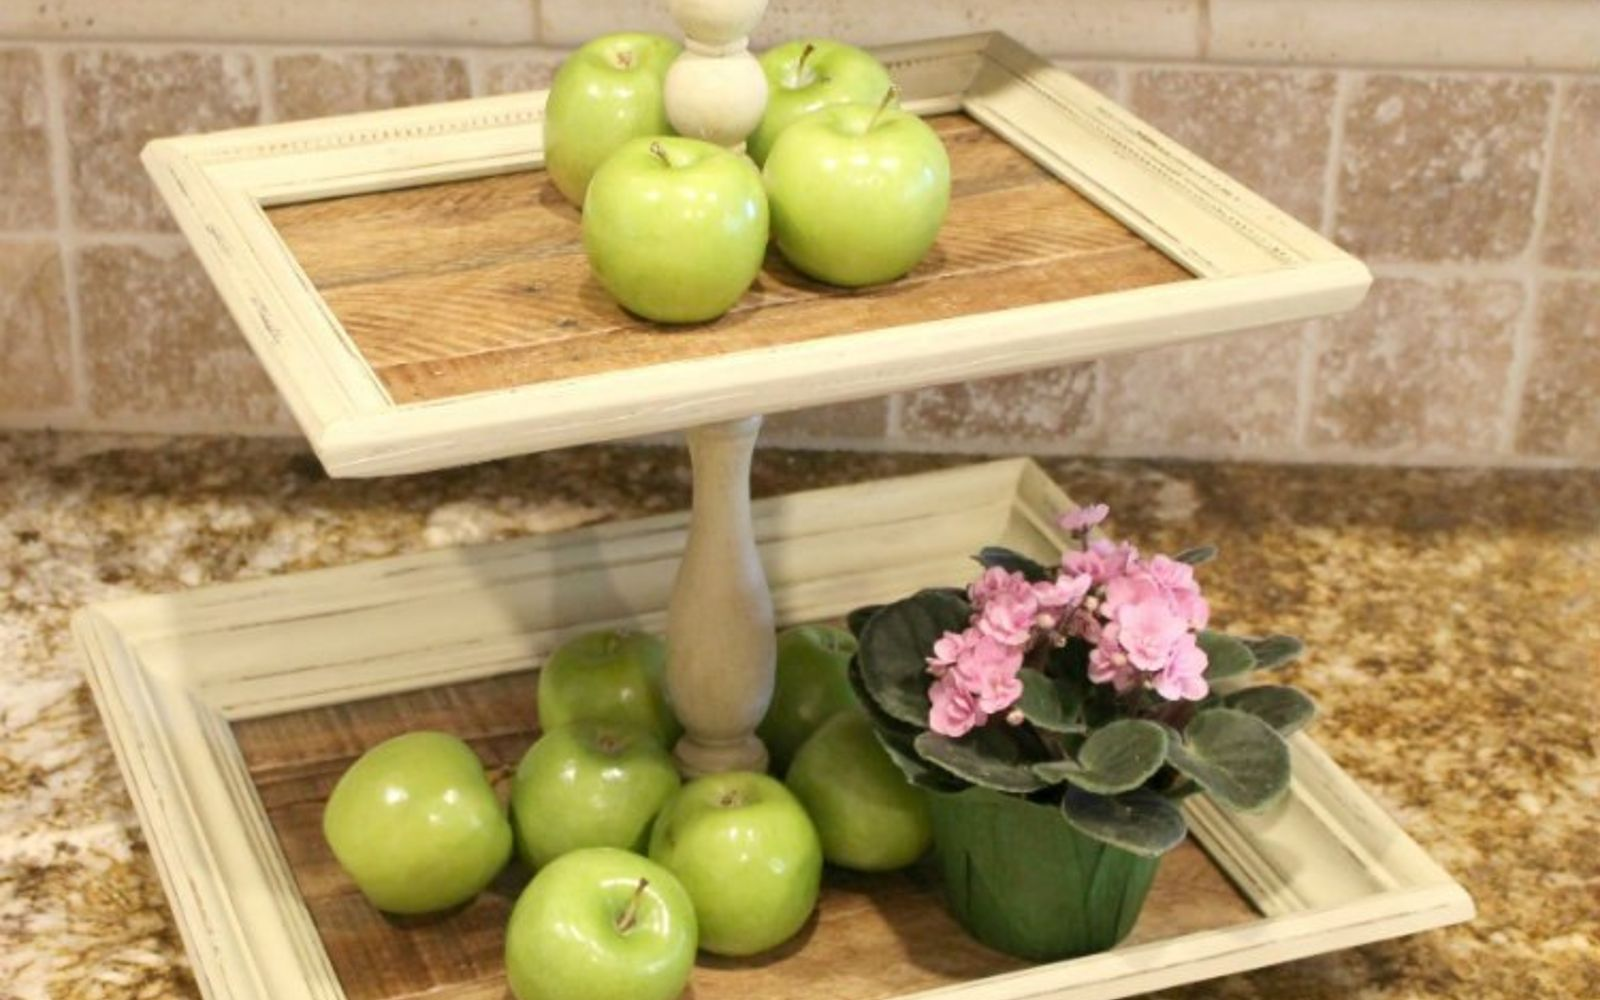 s pamper your guests without spending money 13 ideas , home decor, Have fruit and snacks available